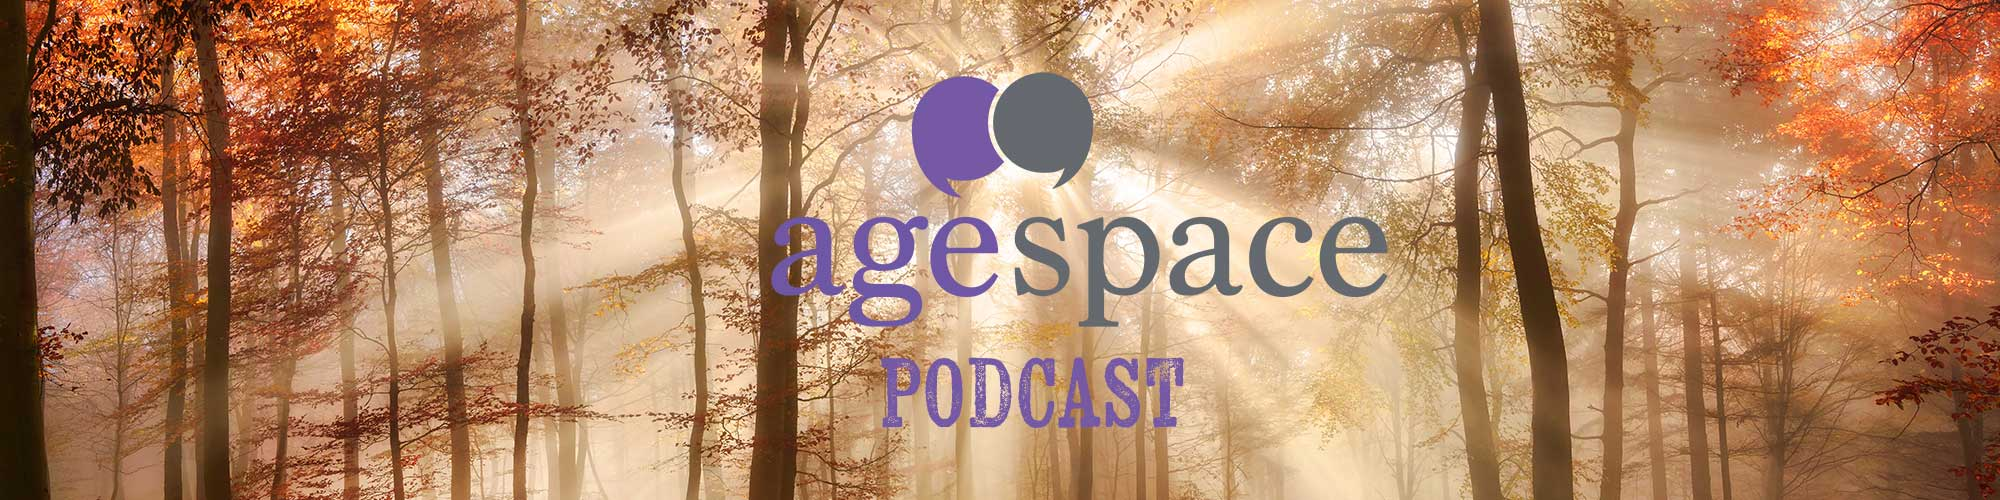 Age Space Podcast